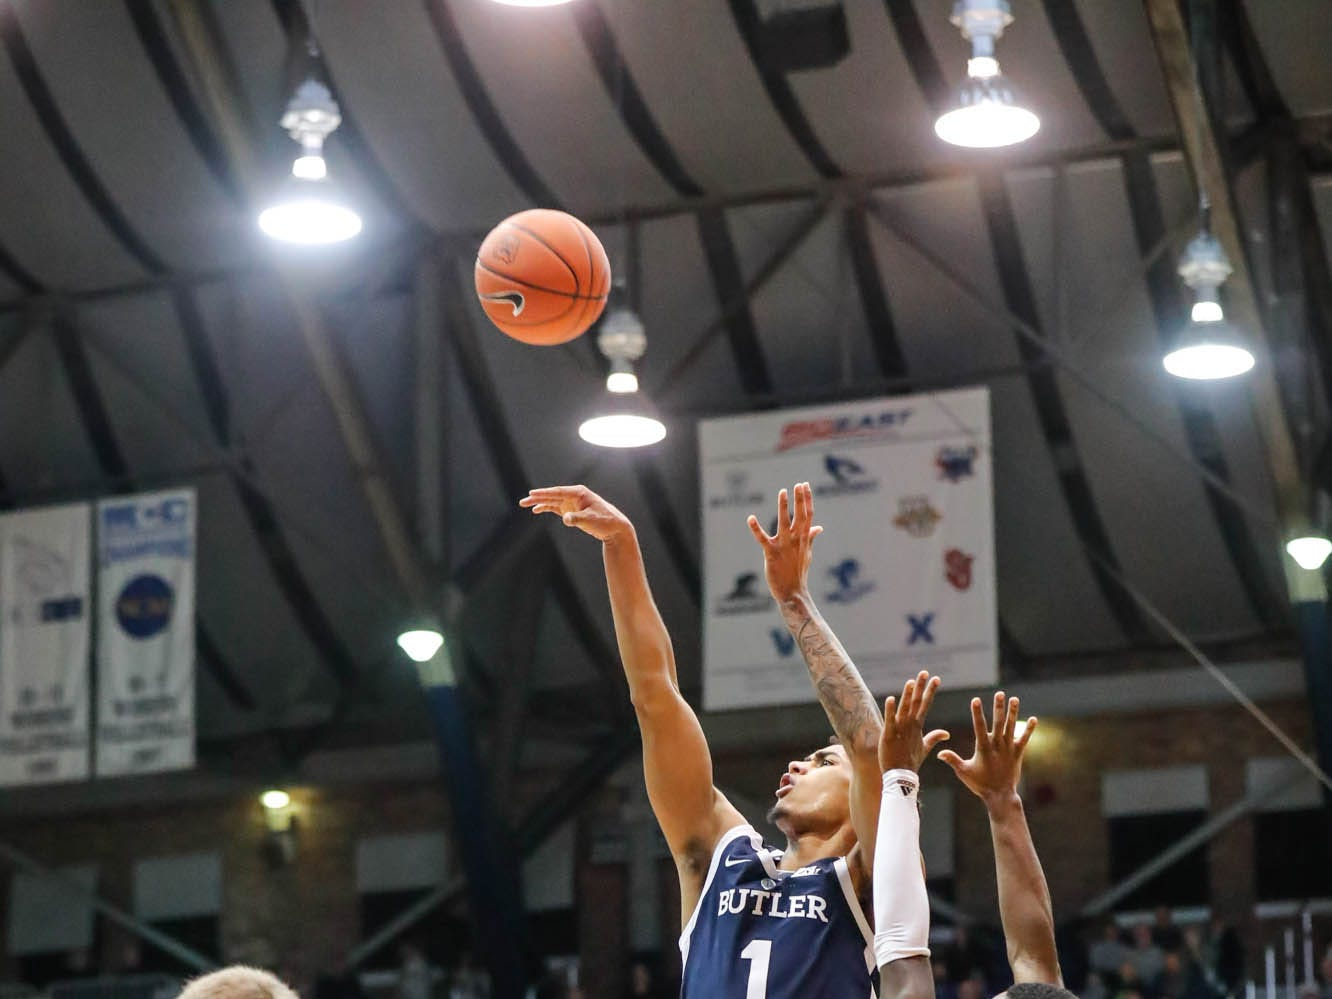 Butler University's forward Jordan Tucker (1) shoots over UC Irvine's guard Max Hazzard (2), and UC forward Tommy Rutherford (42), during a game between Butler University and UC Irvine, at Hinkle Fieldhouse on Friday, Dec. 21, 2018.